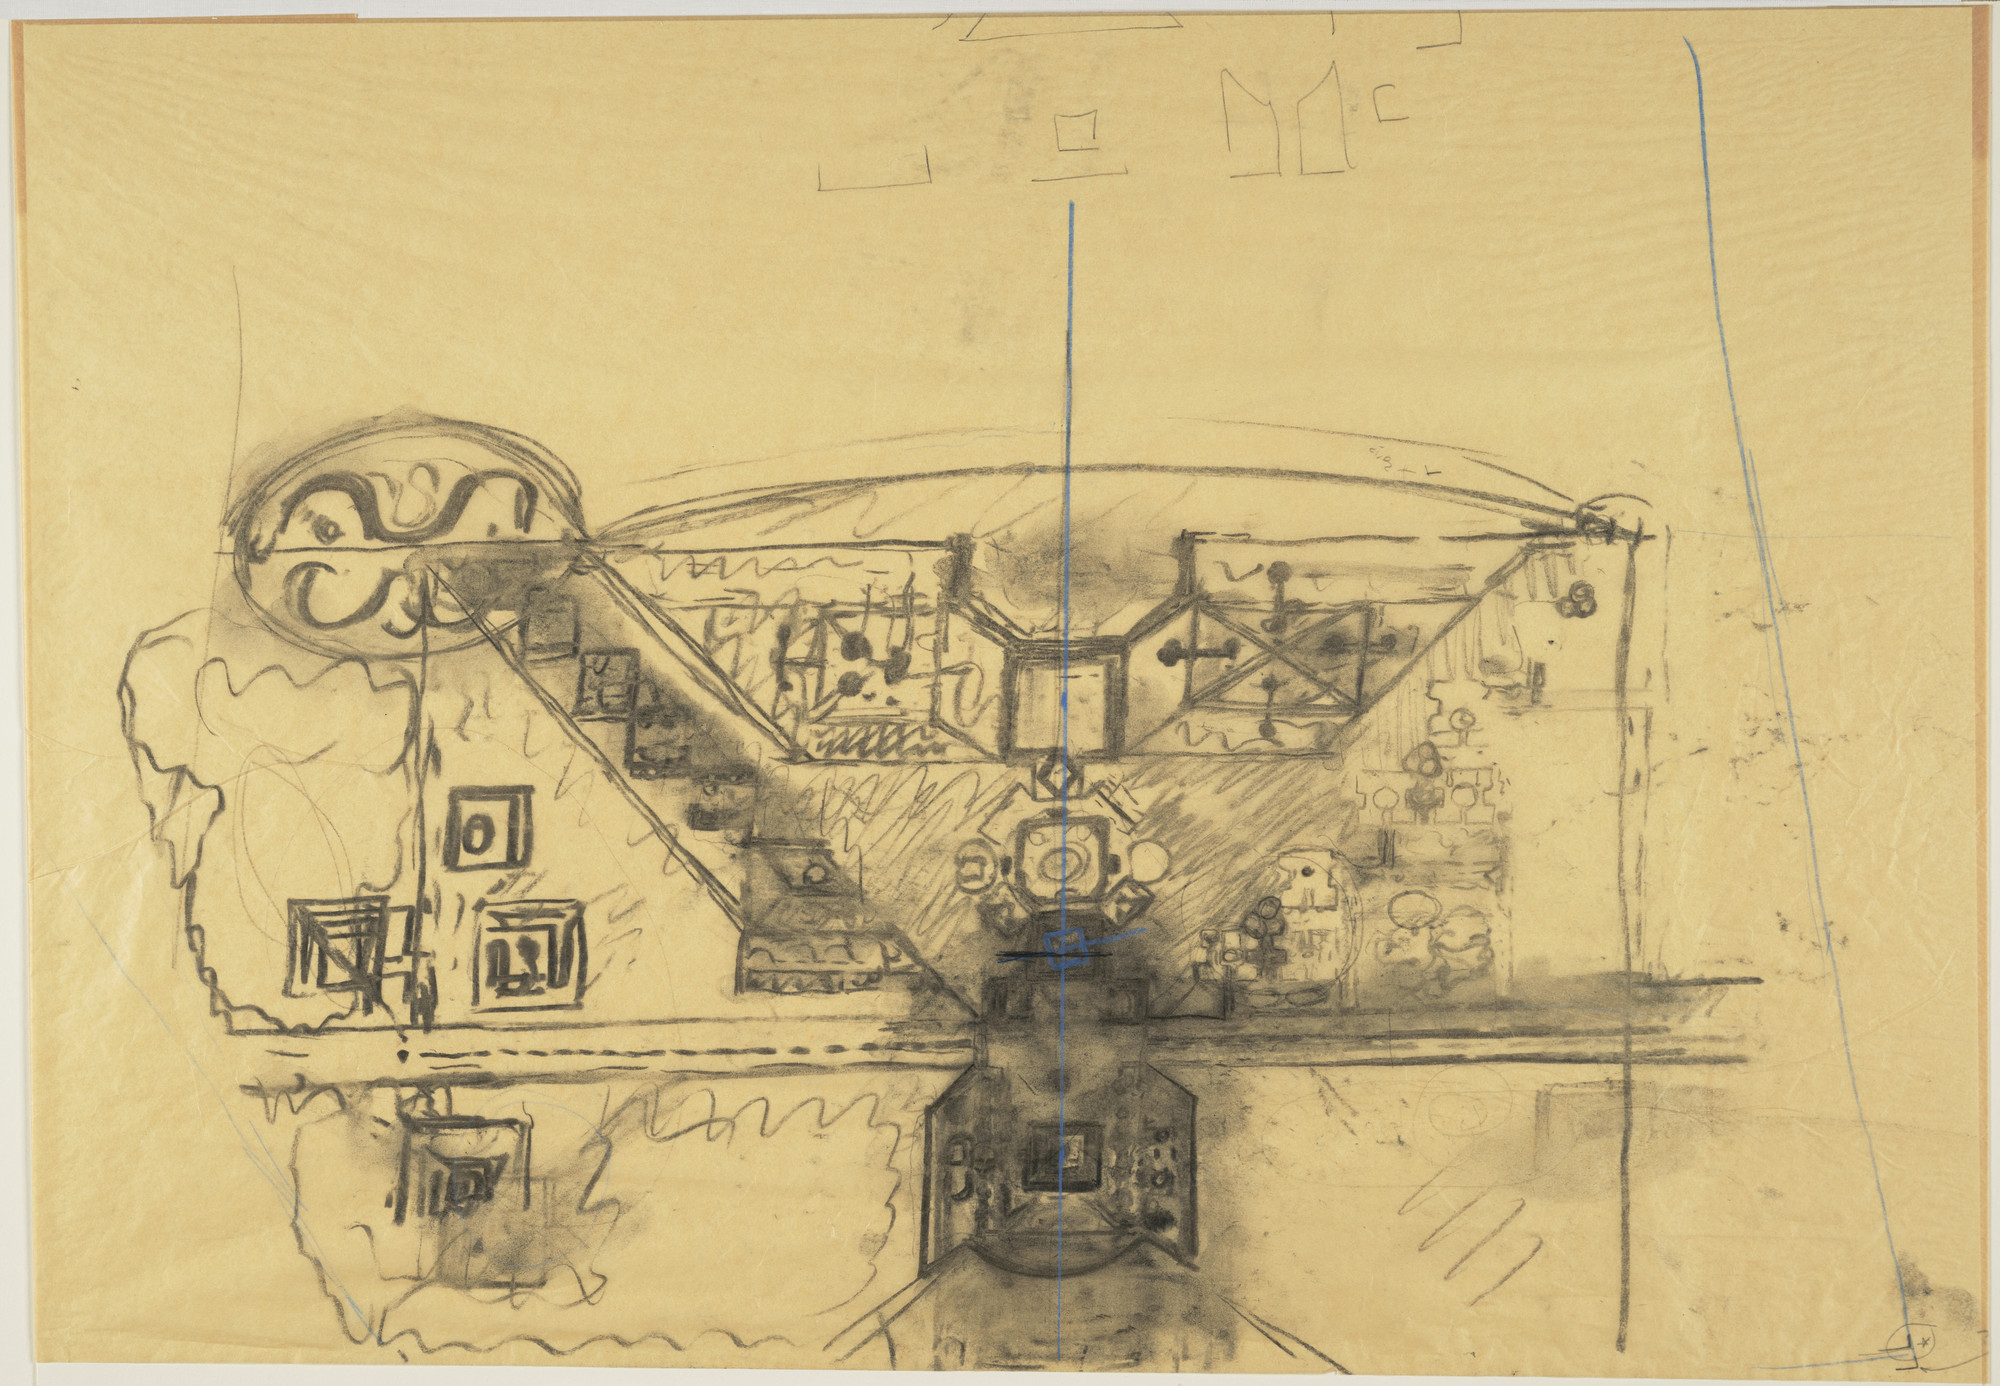 Louis I. Kahn. Sher-e-Bangla Nagar, Capital of Bangladesh, Dhaka, Bangladesh, Site-plan sketch. 1964